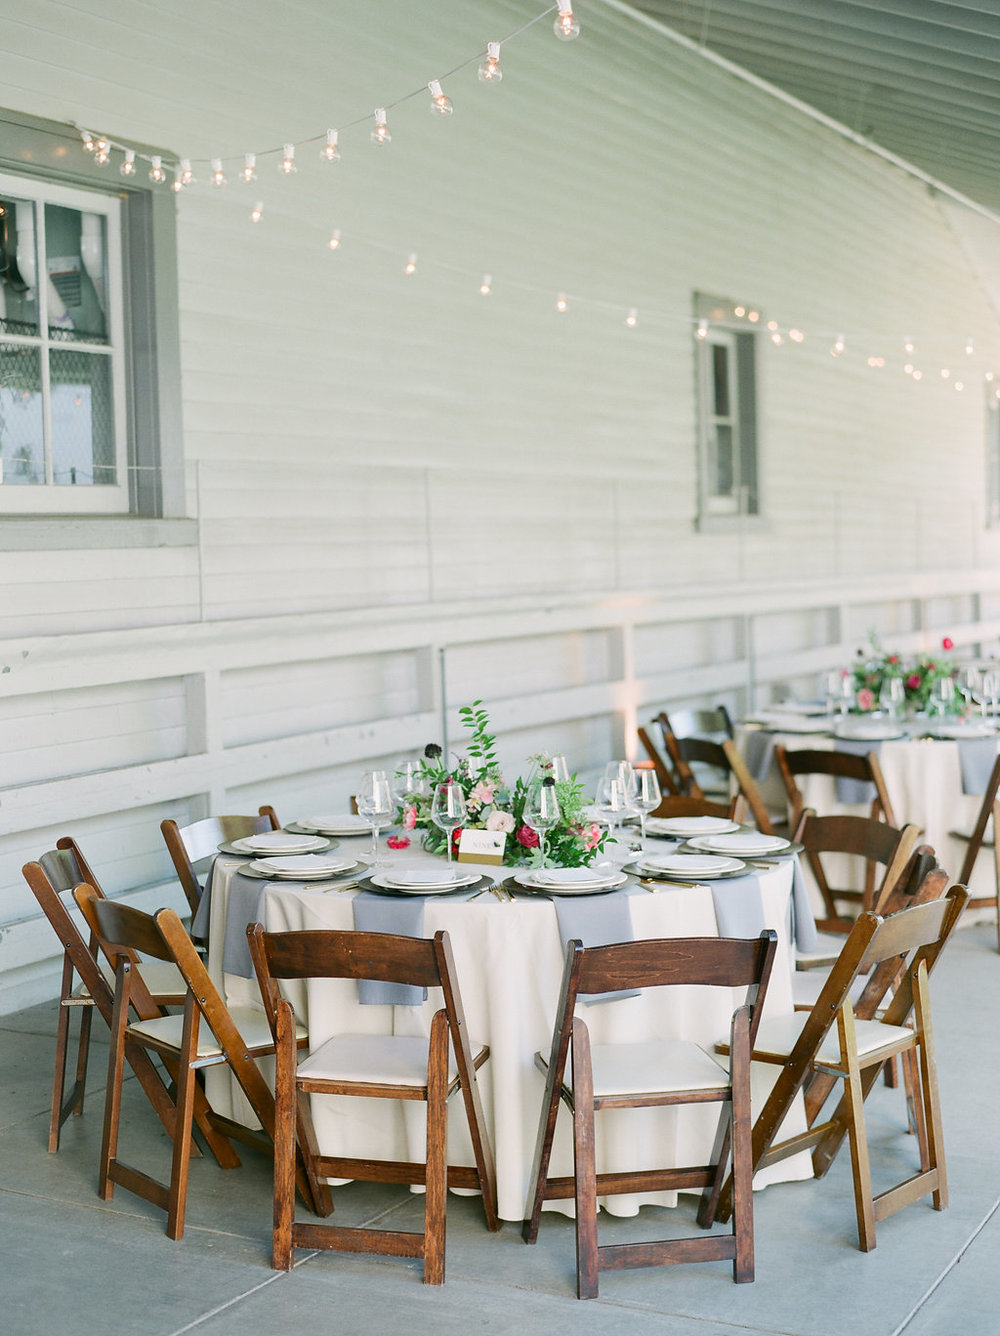 Belle Meade Plantation Carriage House Reception